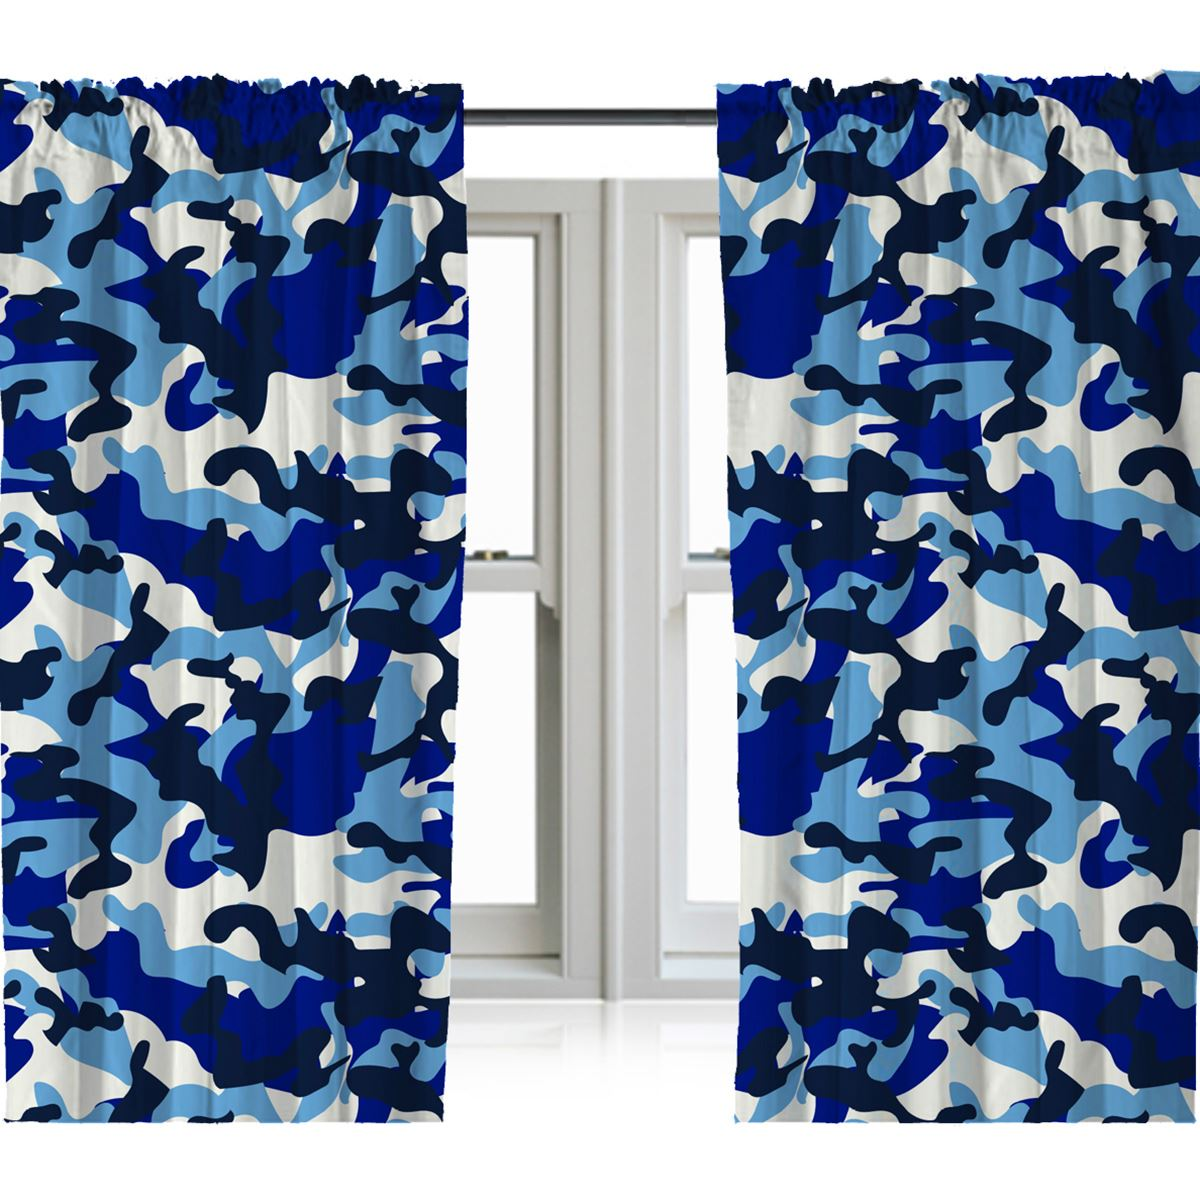 Boys Kids Bedroom Curtains 54 Quot Amp 72 Quot Army Football